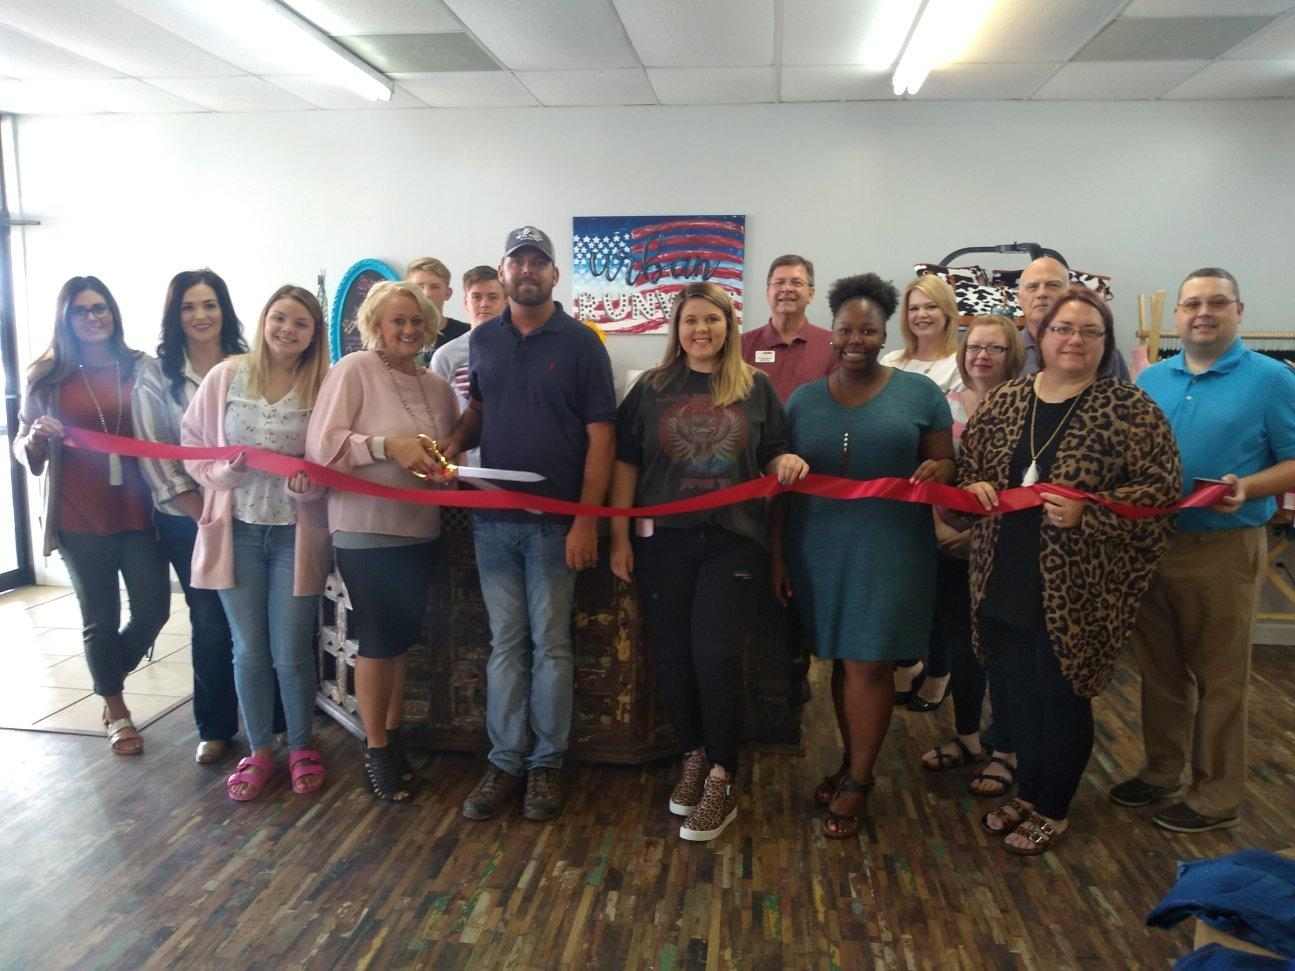 Ribbon cutting for Urban Runway